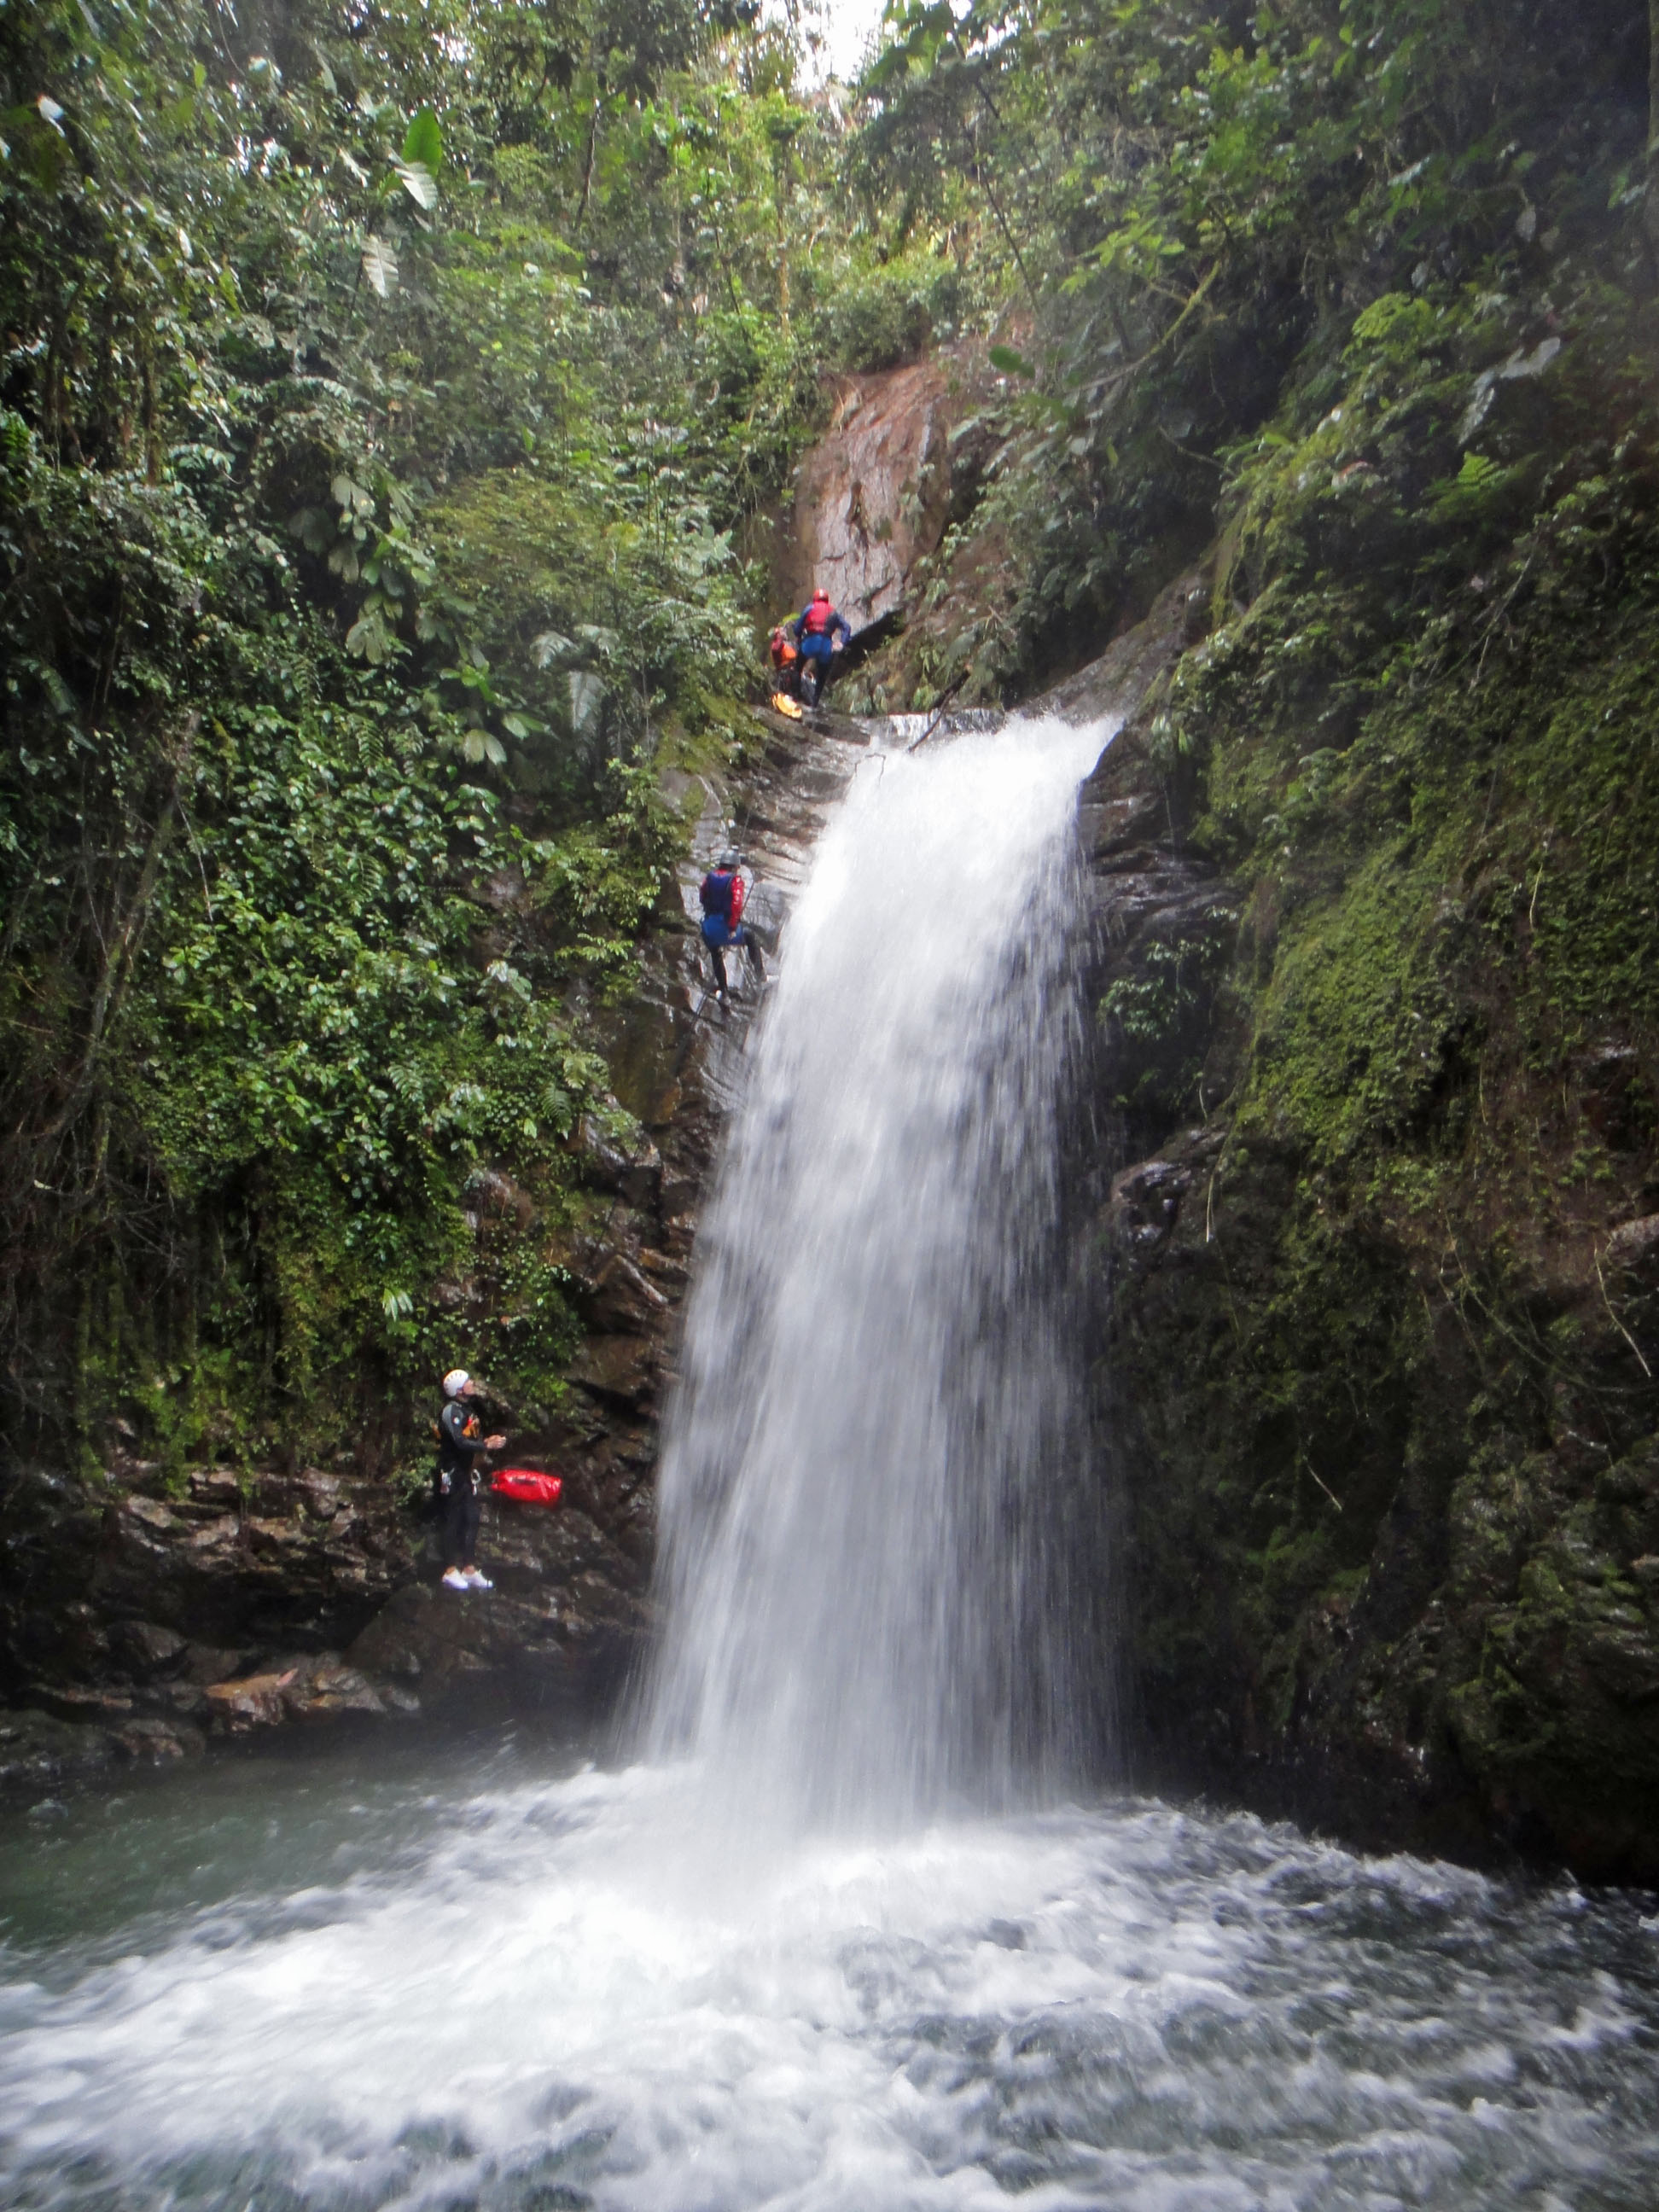 Canyoning in rio verde fromalaskatobrazil for Pictures of small waterfalls